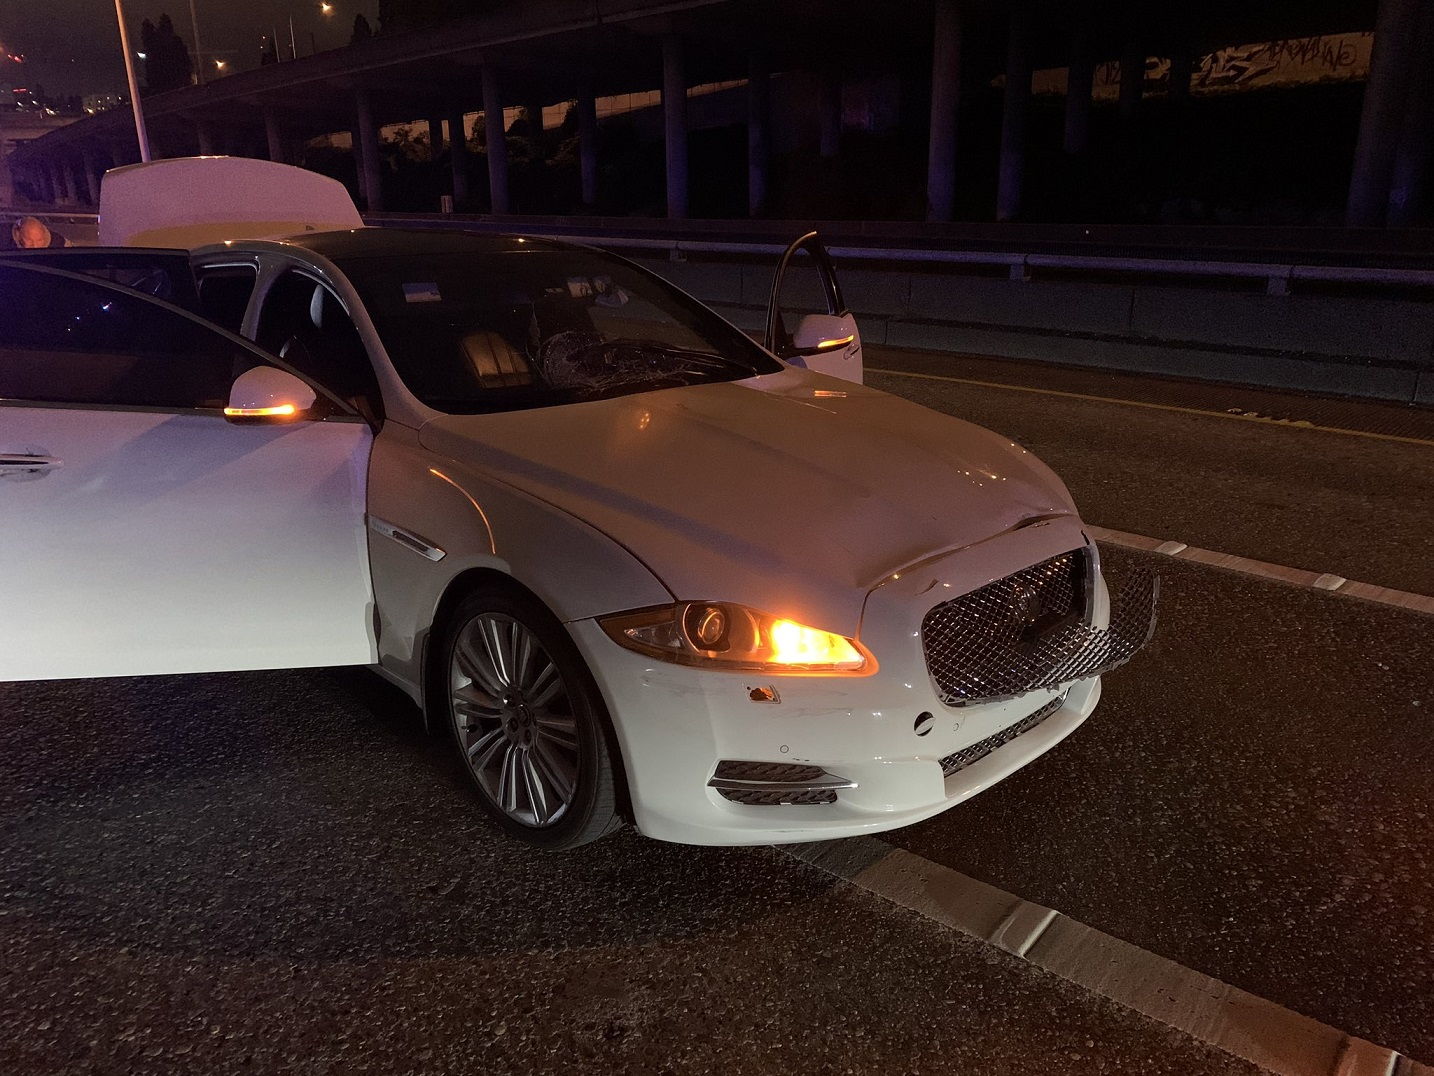 Suspected vehicle which killed a protester on Seattle Freeway